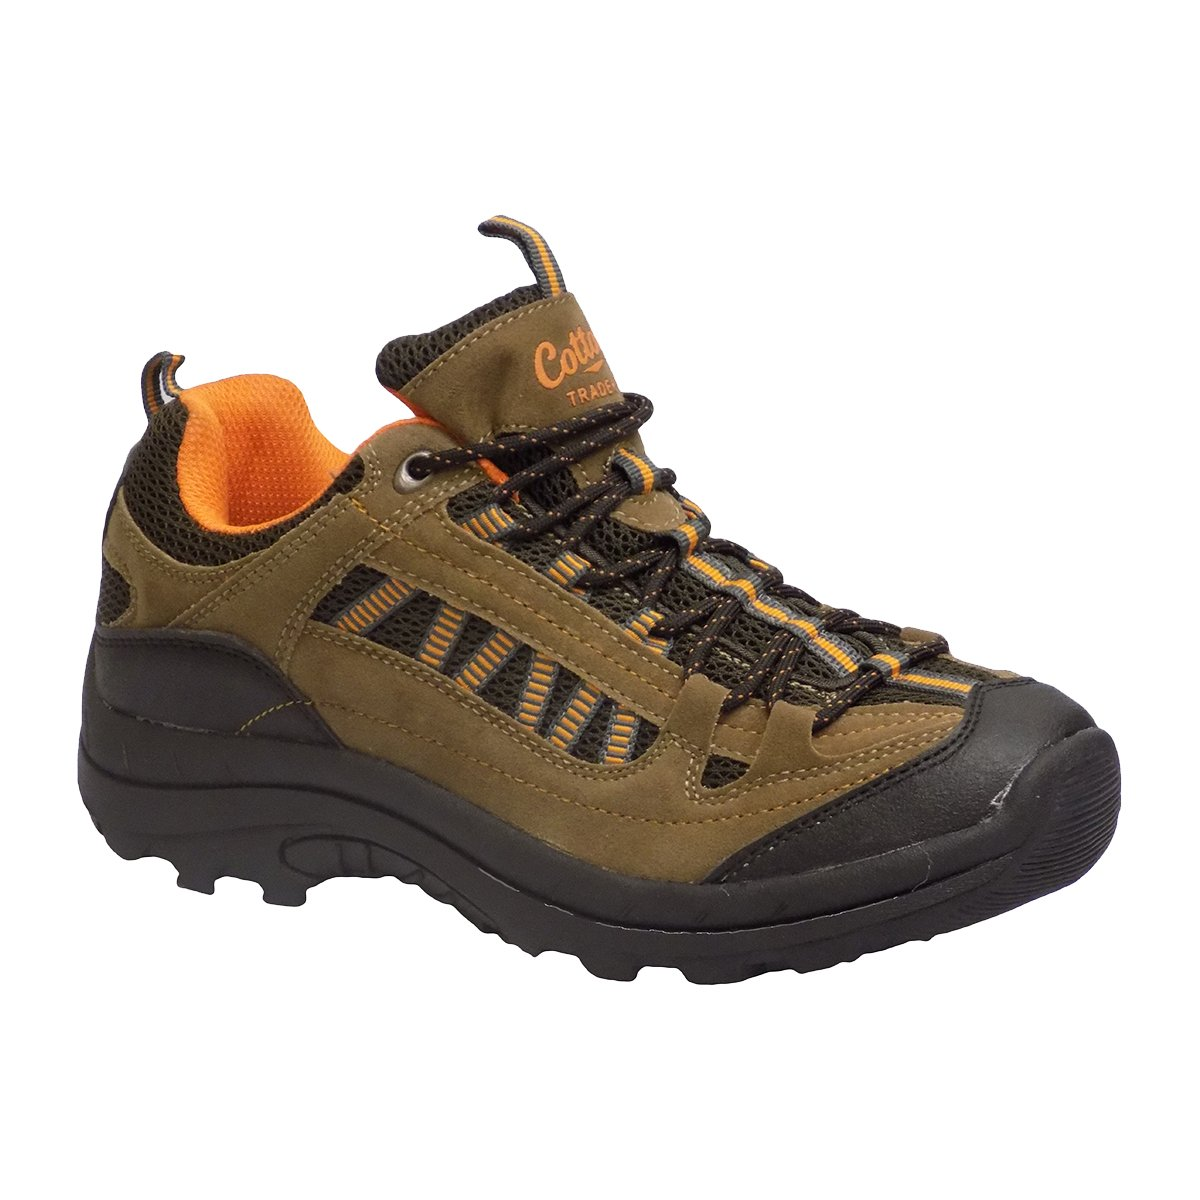 d481ae99544 Amazon.com | Cotton Traders Men's Hiking Trail Brown Orange Laced ...